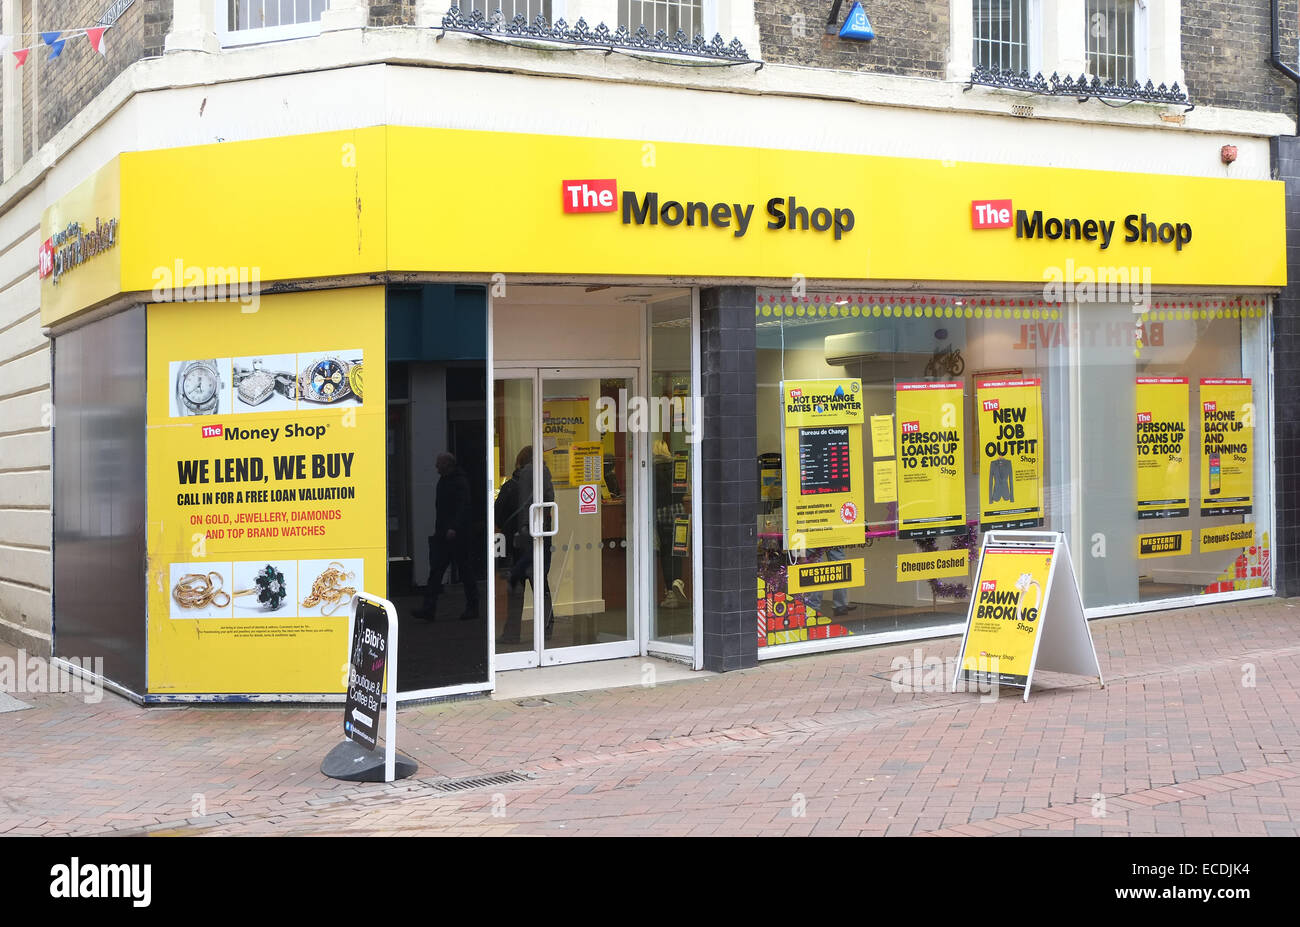 Super sonic payday loans image 10